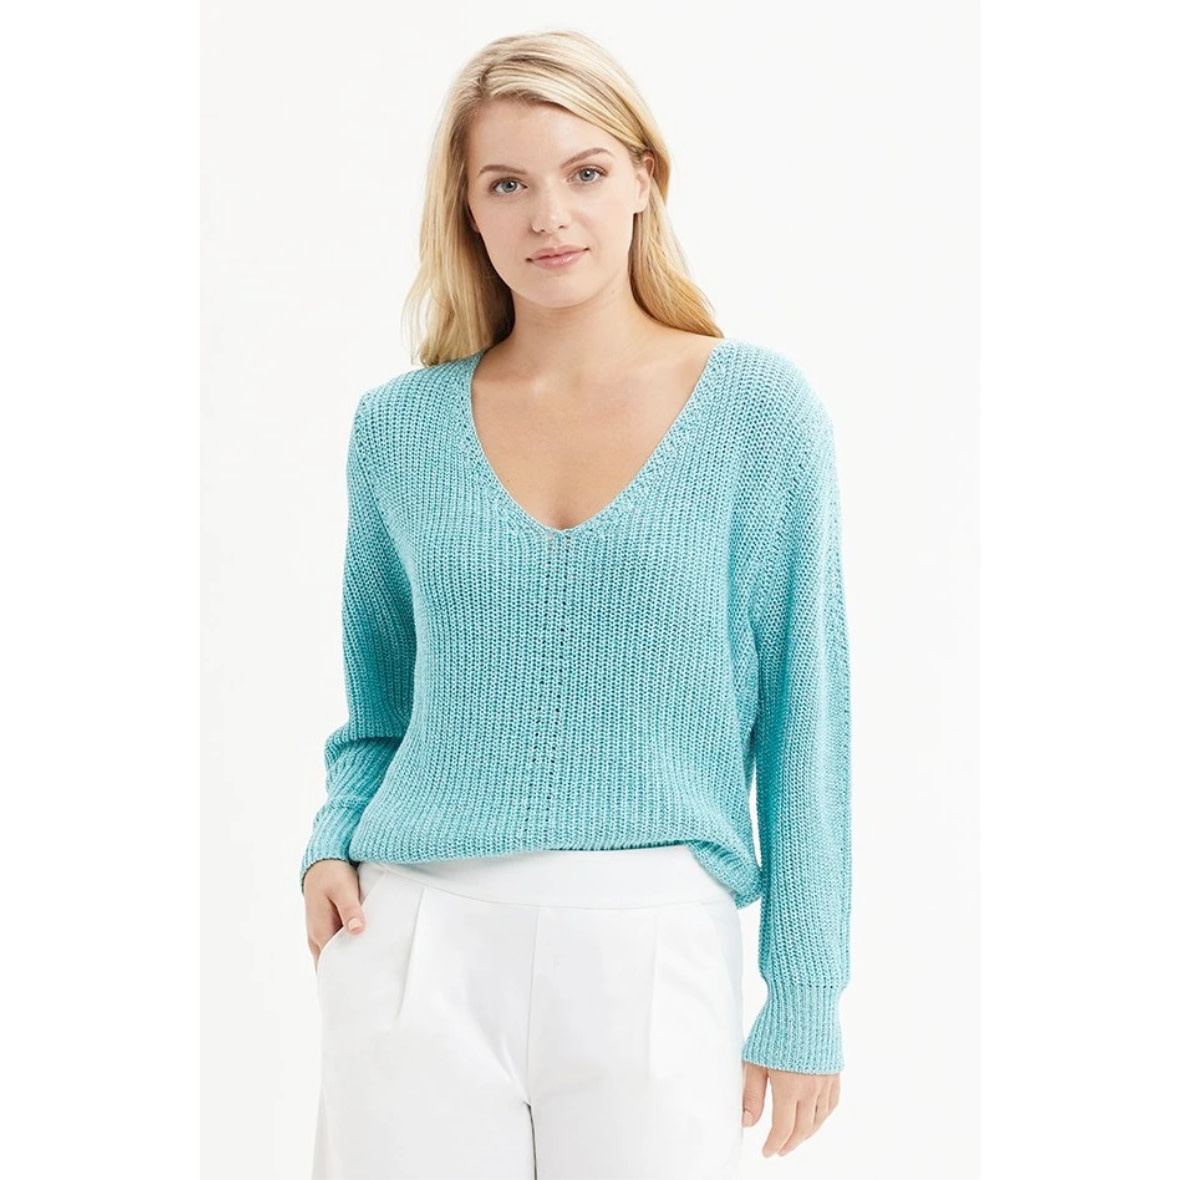 Marie Oliver Marie Oliver Lucy Metallic Sweater